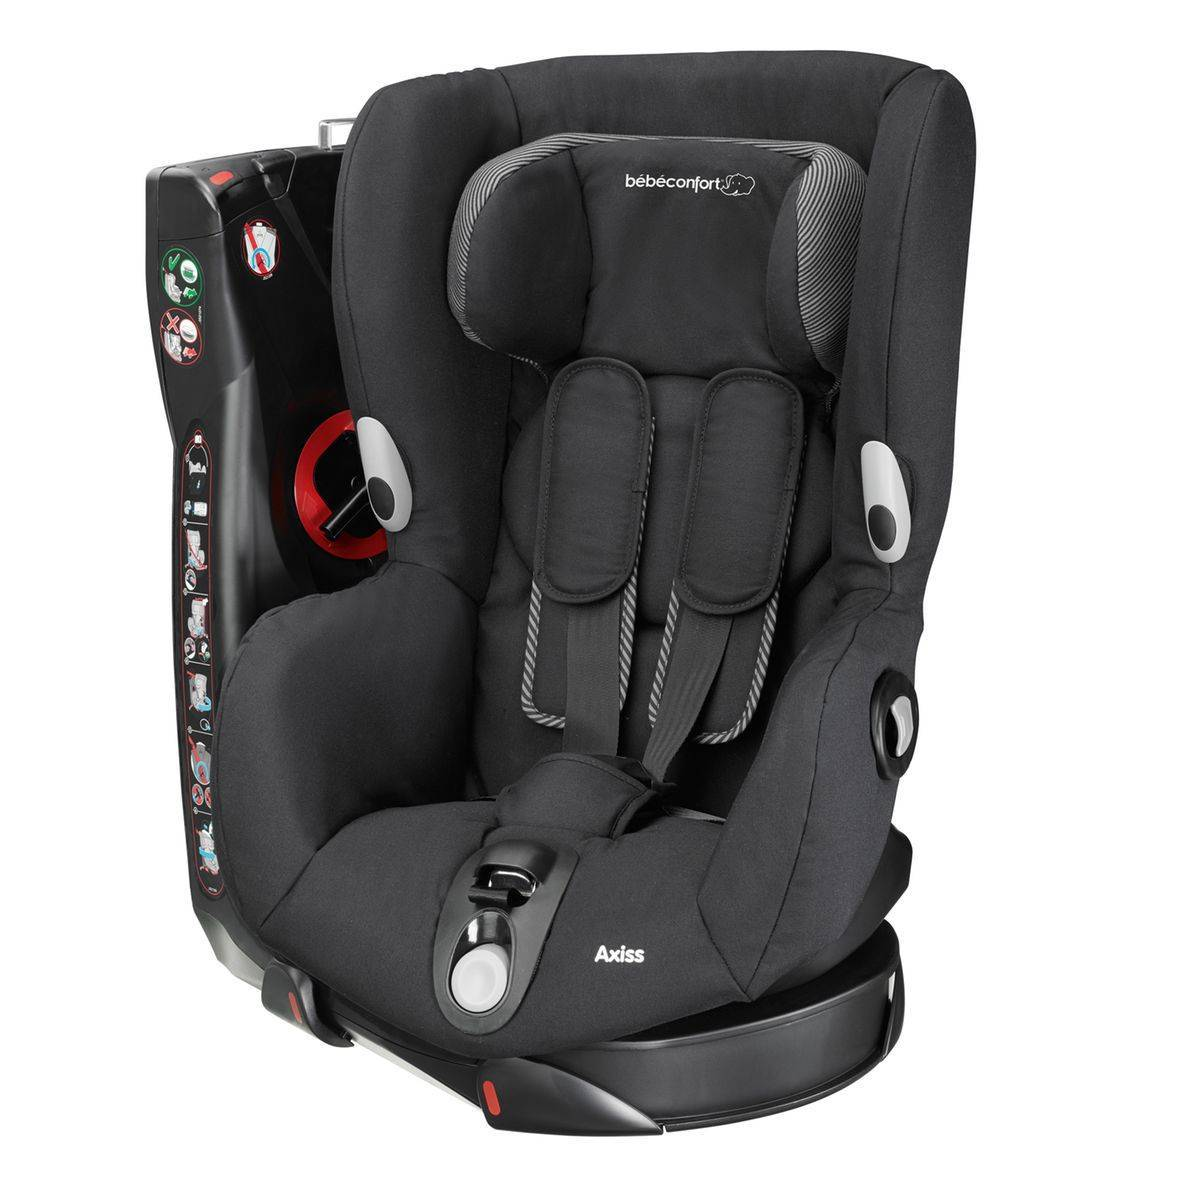 BEBE CONFORT Siège Auto Axiss col. noir Groupe1 - BEBE CONFORT